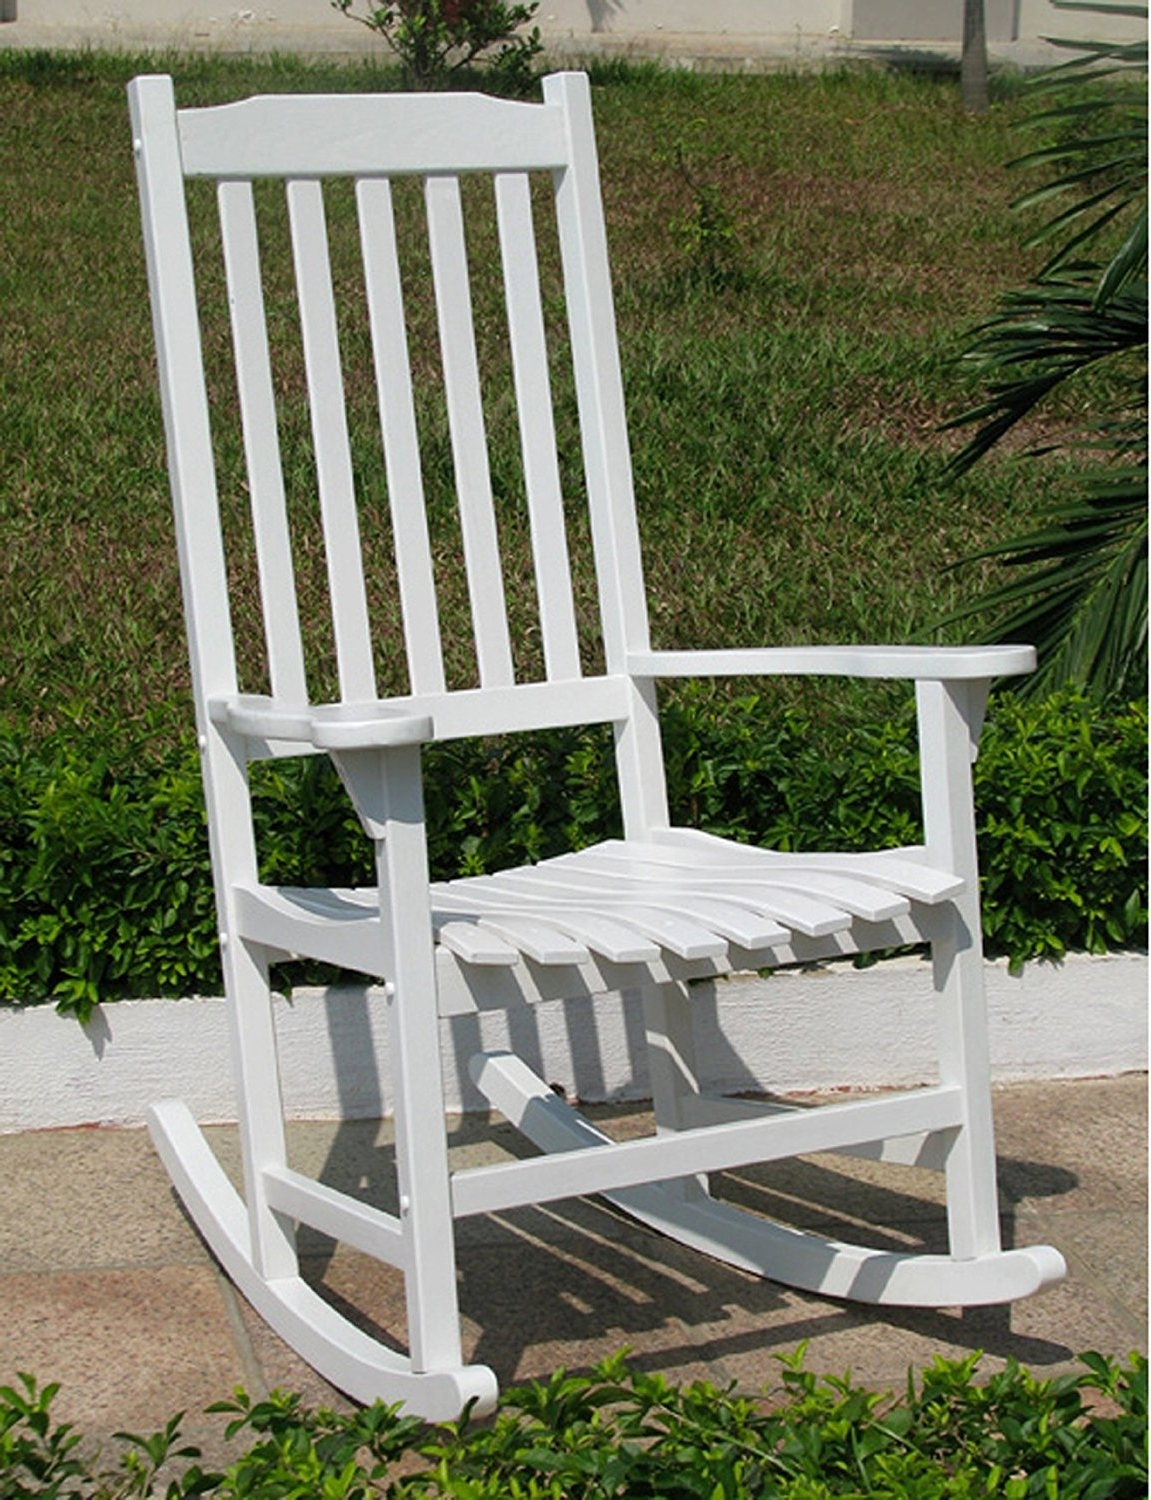 Outdoor Vinyl Rocking Chairs In Latest Patio & Garden : Rocking Chairs For Outdoors Amazing Amazon Merry (View 11 of 20)